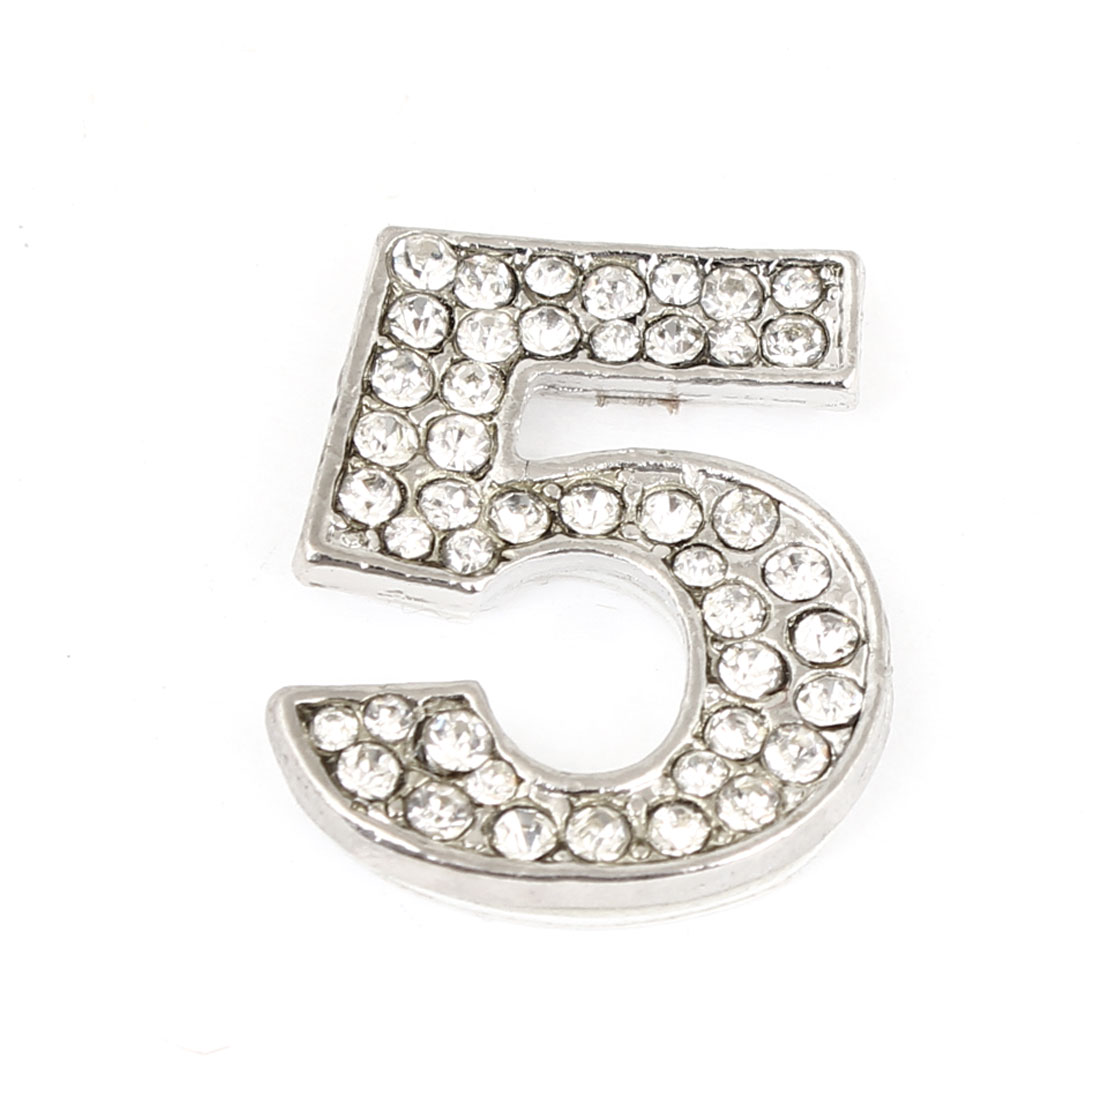 Bling Rhinestones Inlaid Silver Tone Arabic Number 5 Shaped Car Sticker Decor